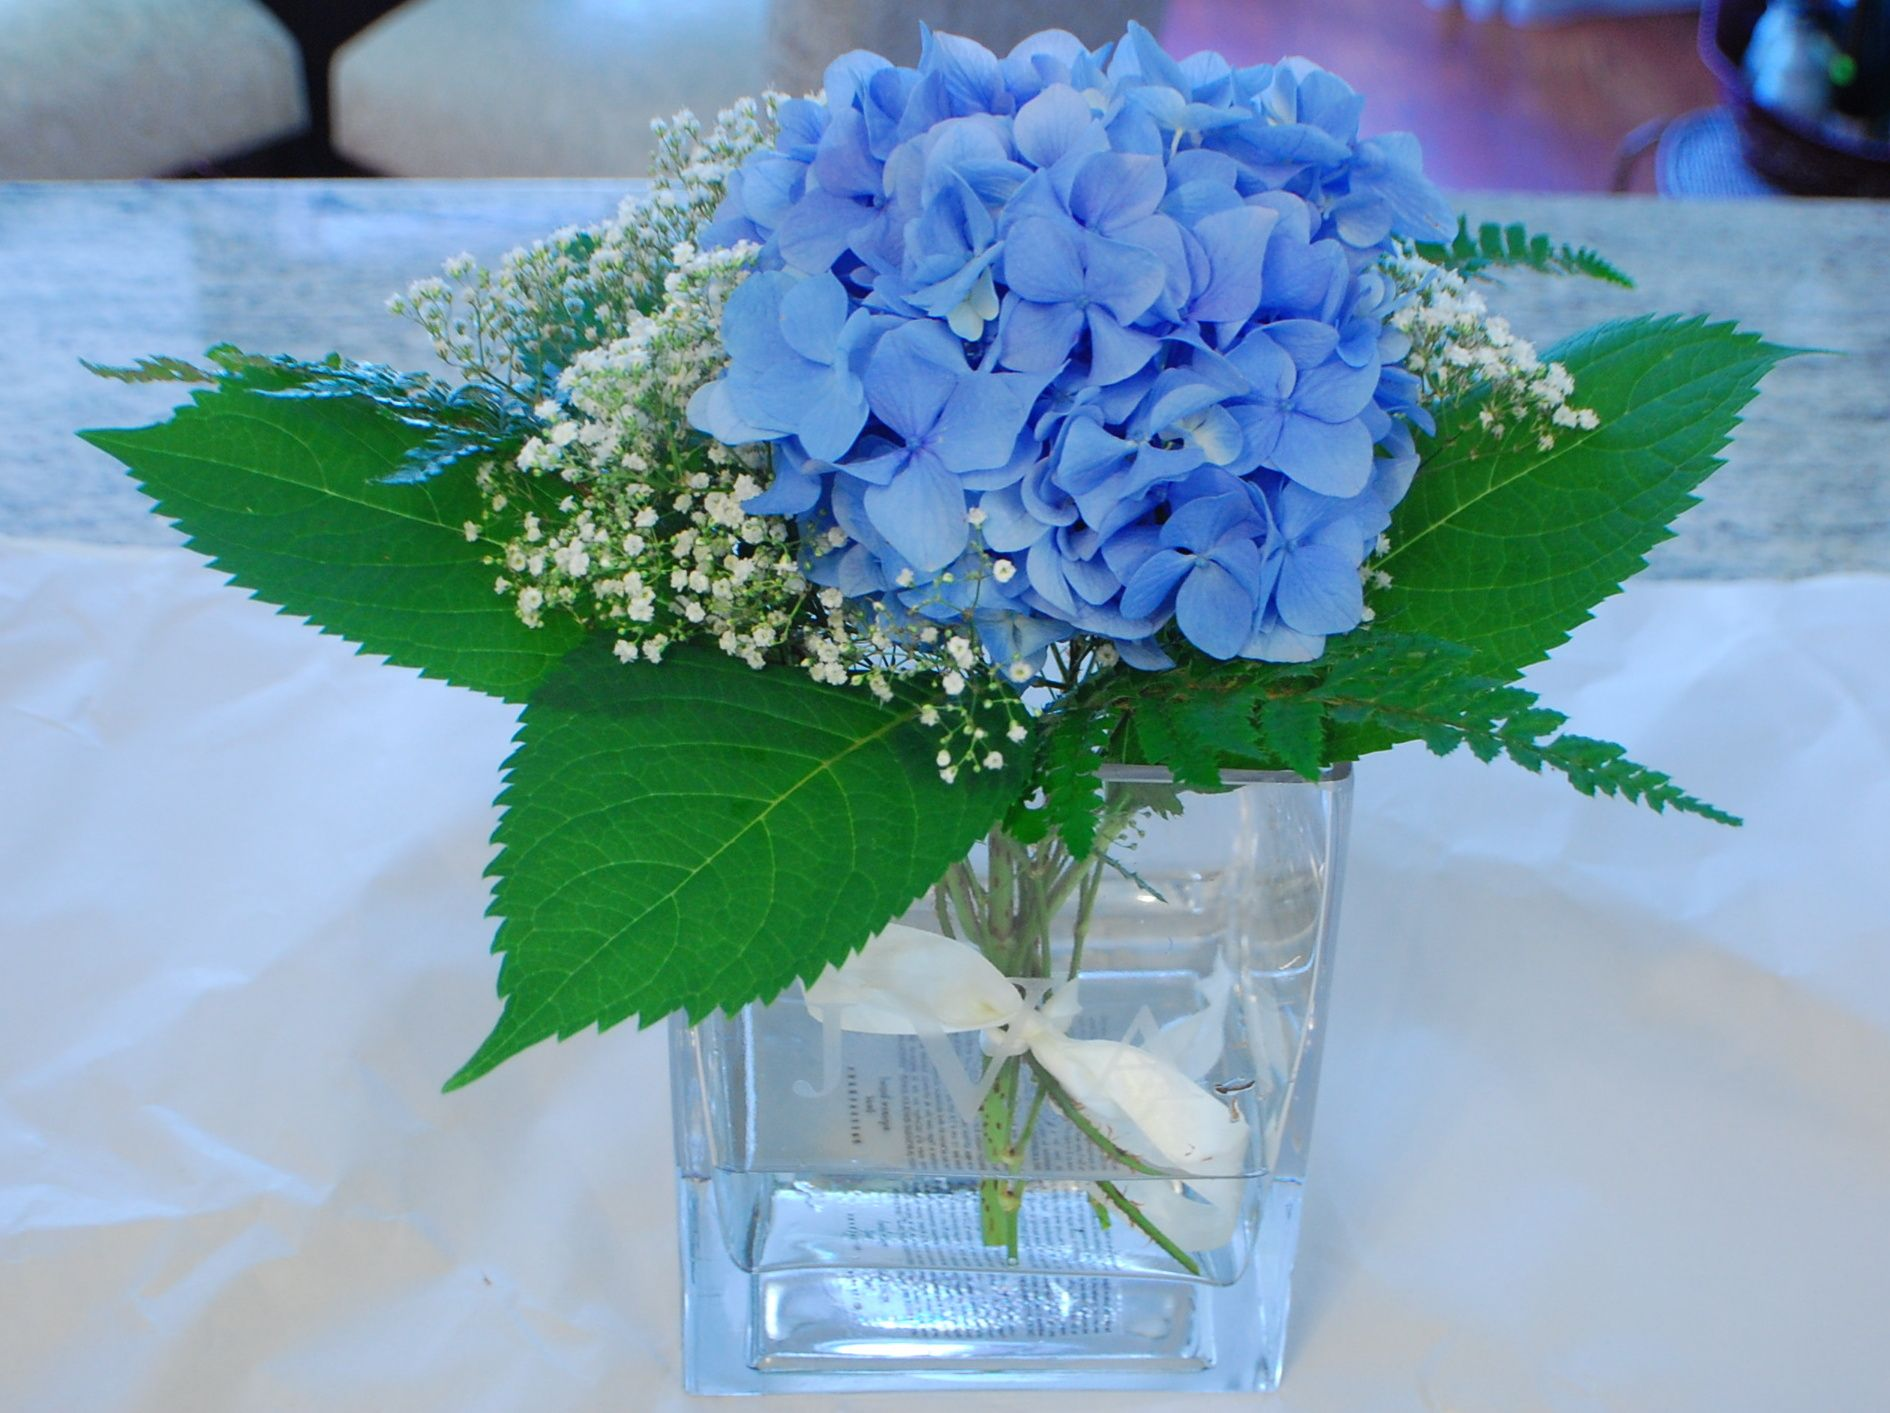 Hydrangea floral arrangements google search floral arrangements incredible hydrangea arrangements for home decor blue hydrangea arrangements with clear glass vase for floral arrangement and centerpiece ideas also dining izmirmasajfo Images